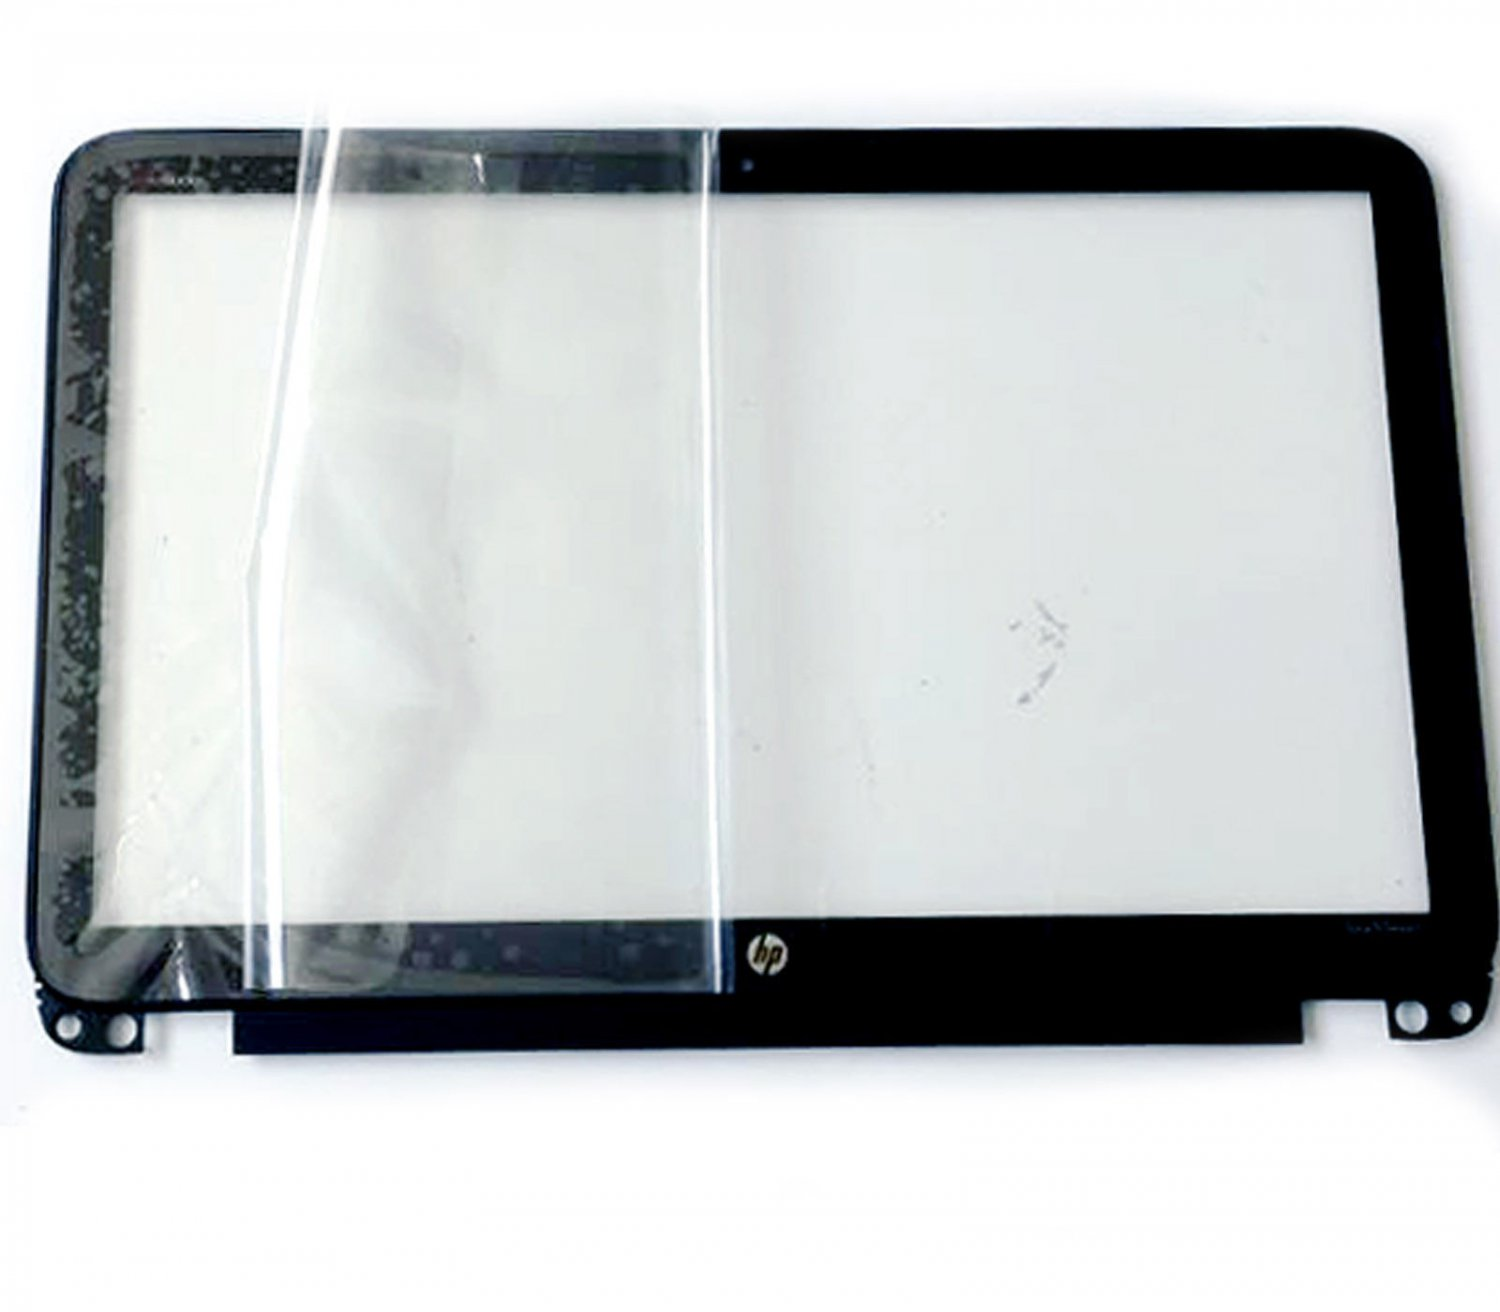 new hp envy laptop screen glass with bezel assembly. Black Bedroom Furniture Sets. Home Design Ideas